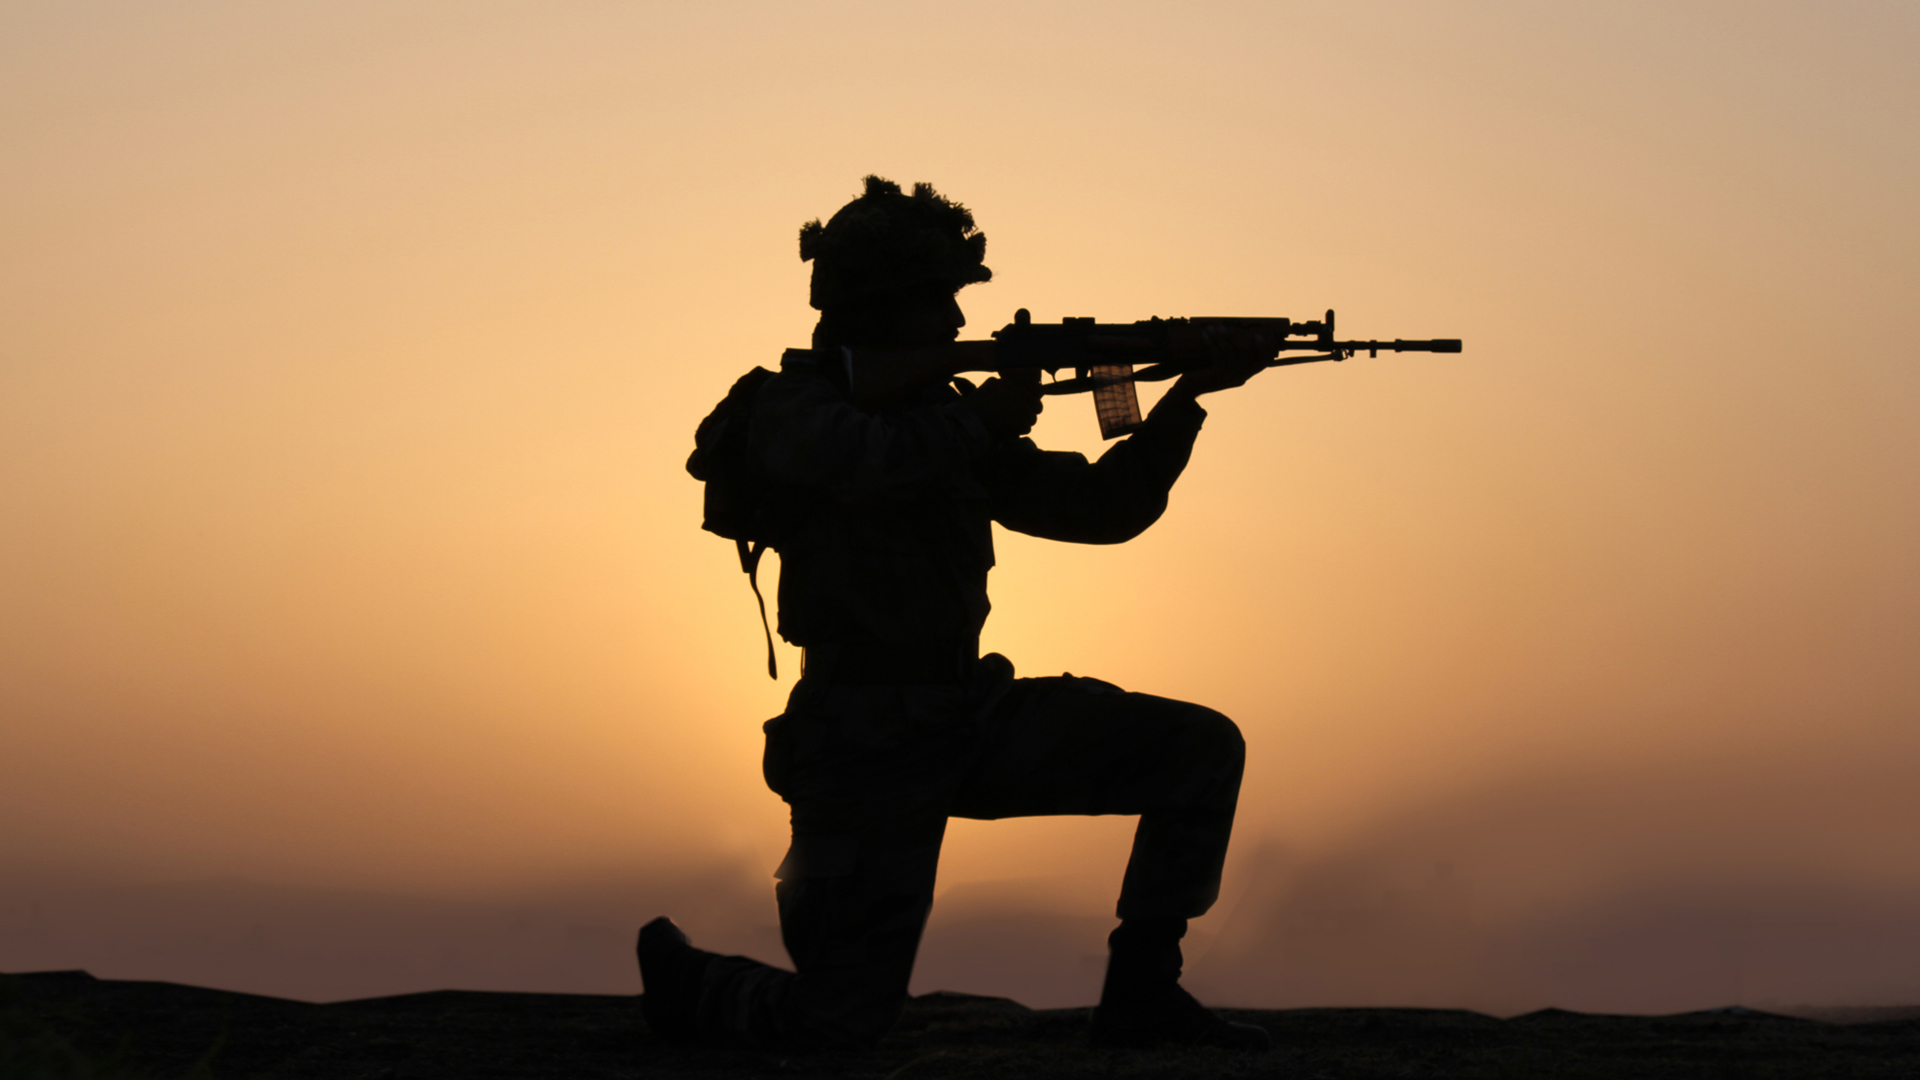 indian army wallpaper with soldier in silhouette | hd wallpapers